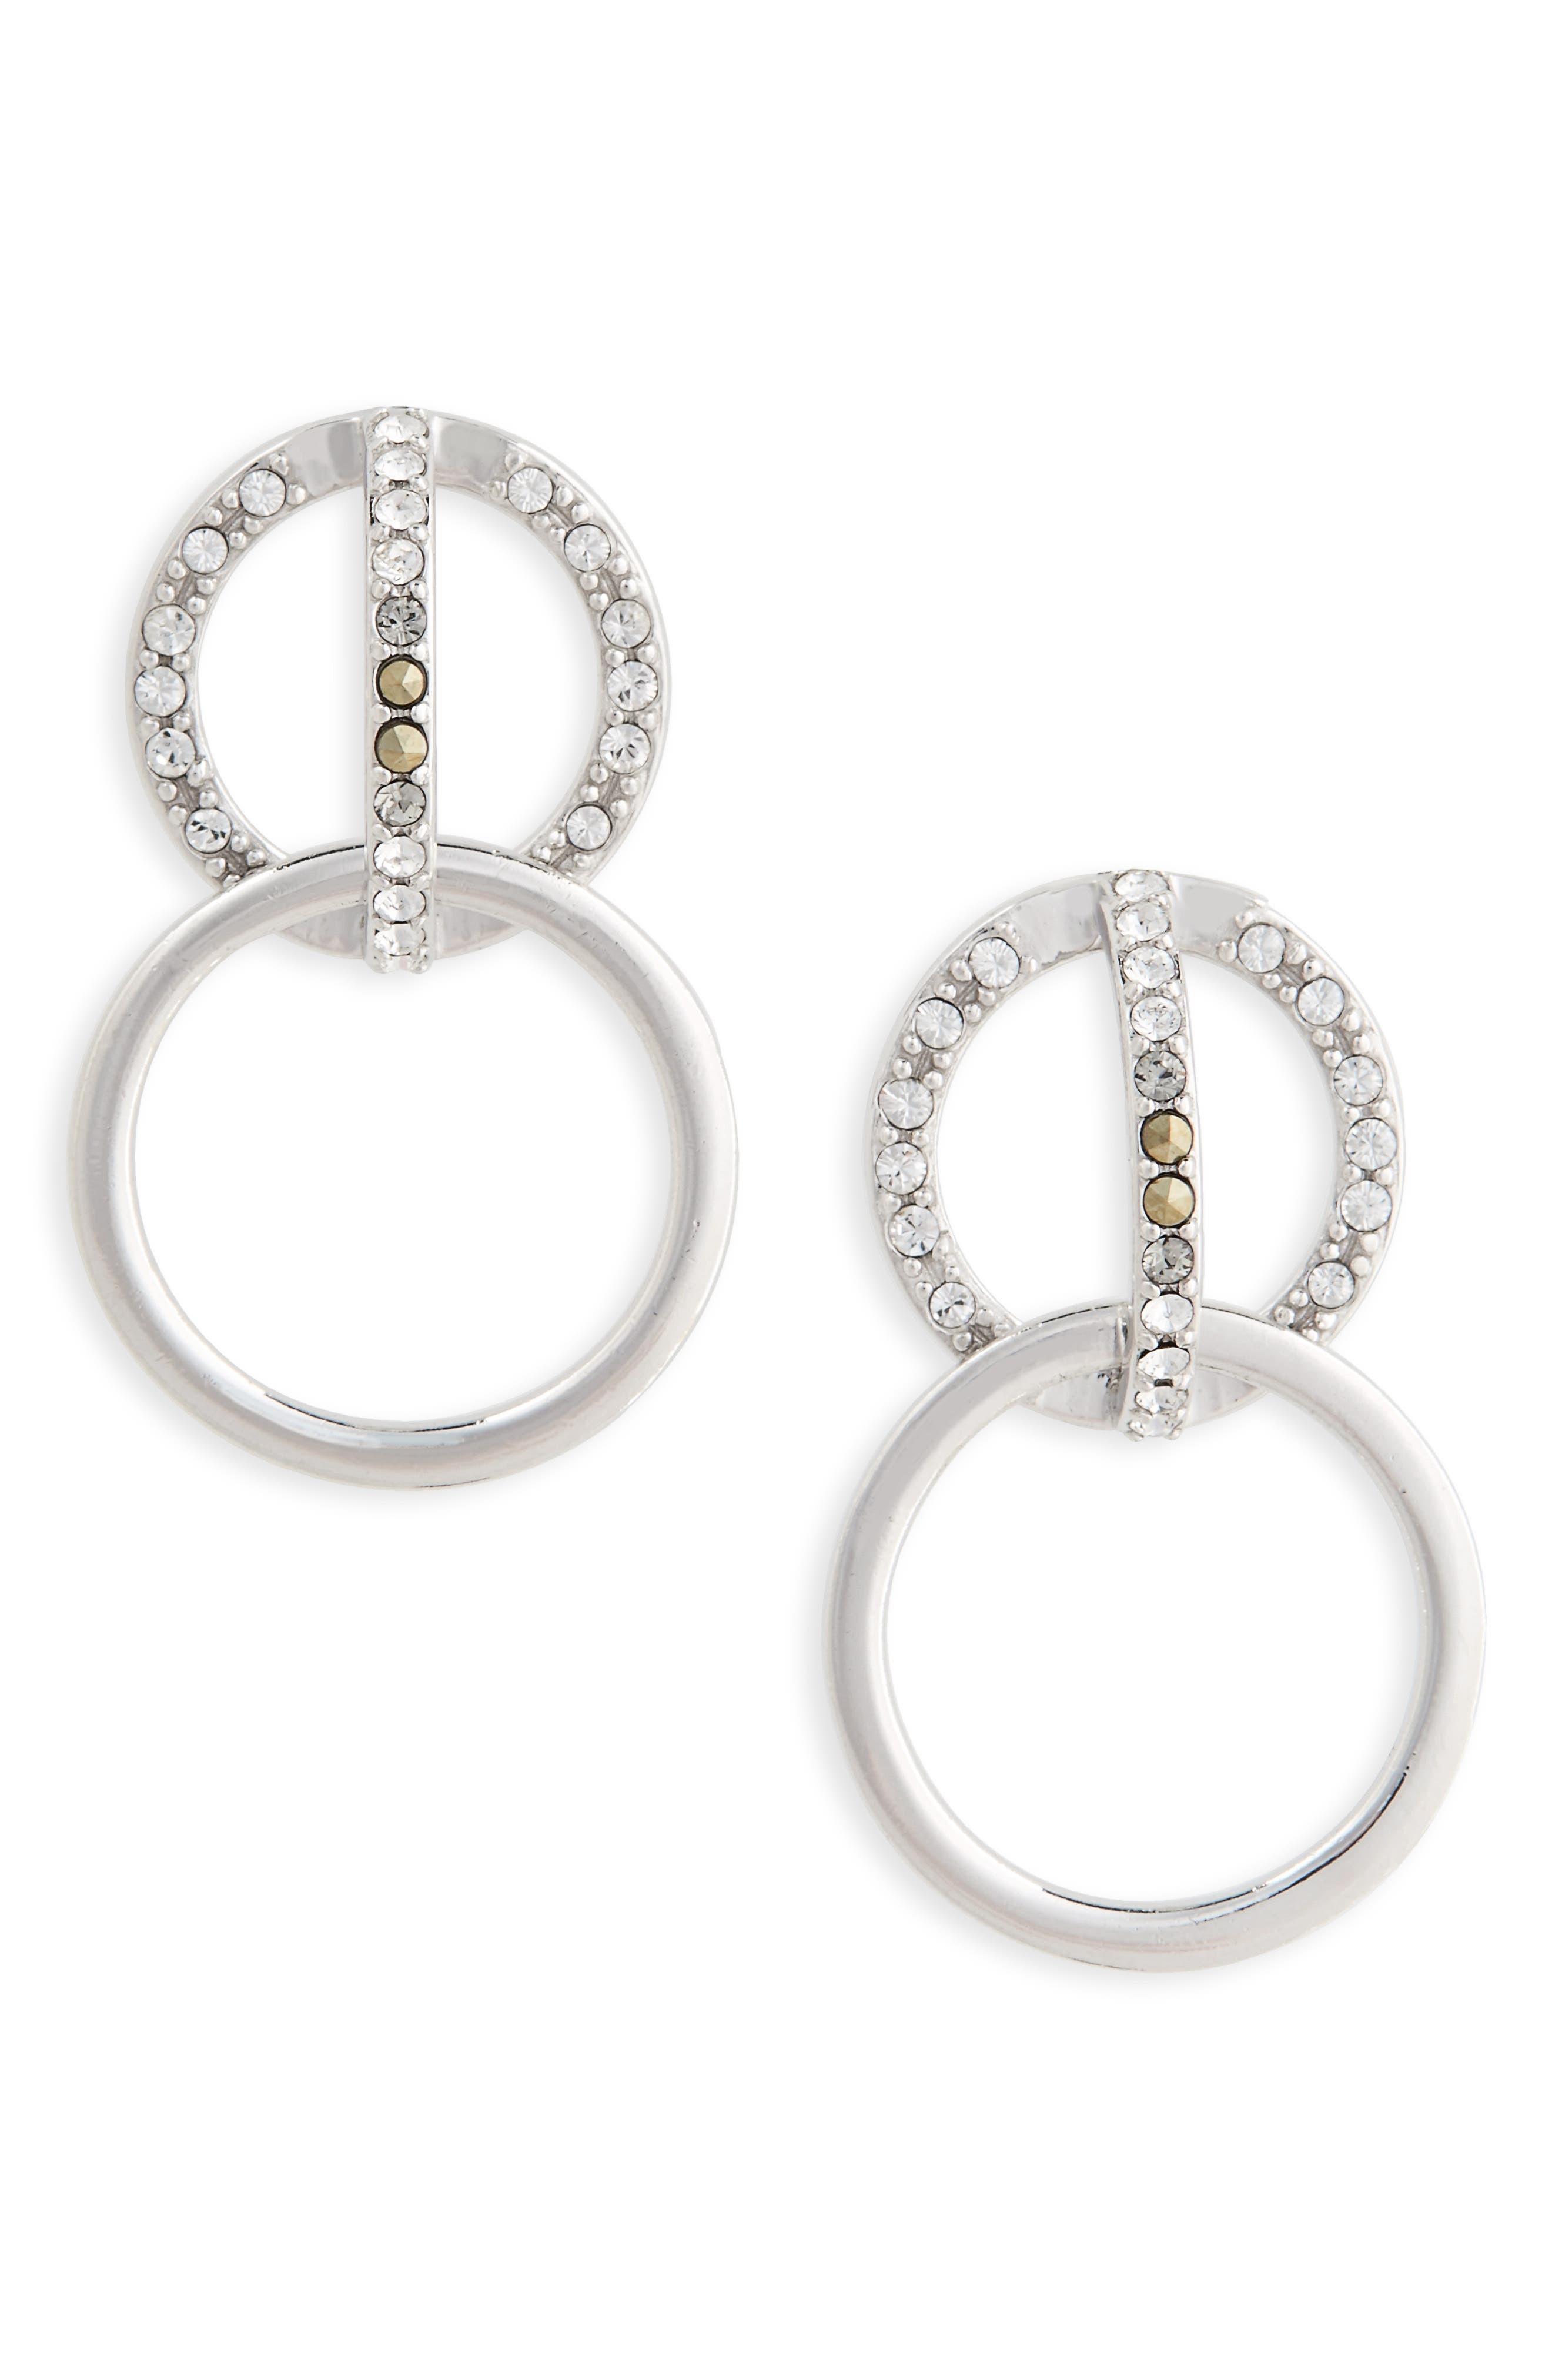 JUDITH JACK Silver Sparkle Double Drop Earrings